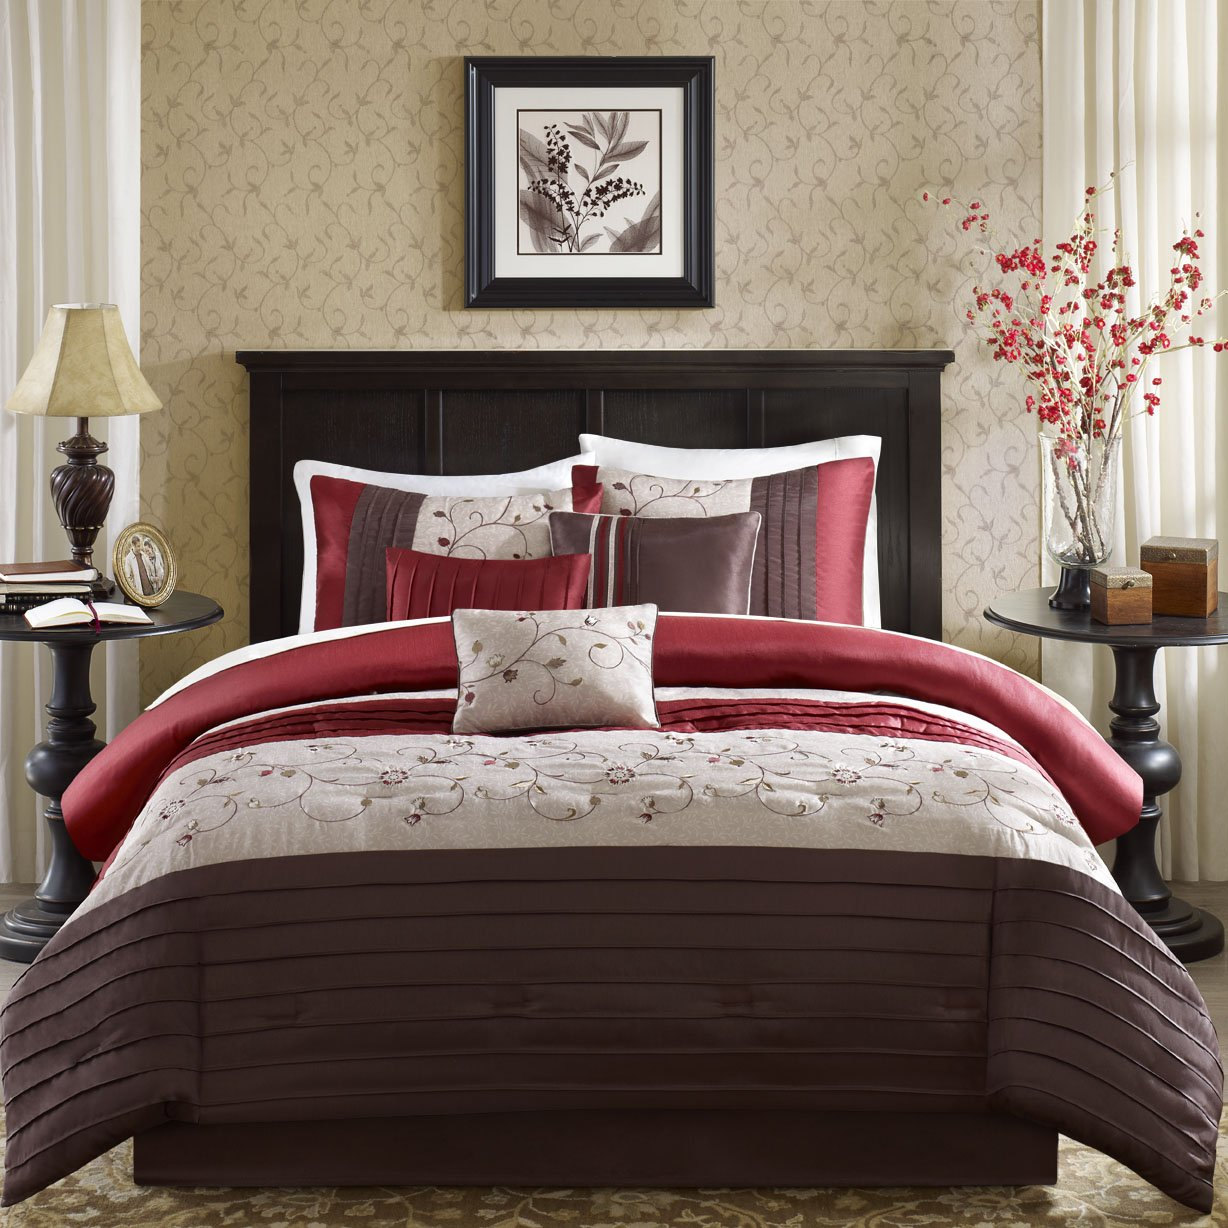 amazoncom madison park serene 6 piece duvet cover set red kingcal king embroidred includes 1 duvet cover 2 king shams3 decorative pillows